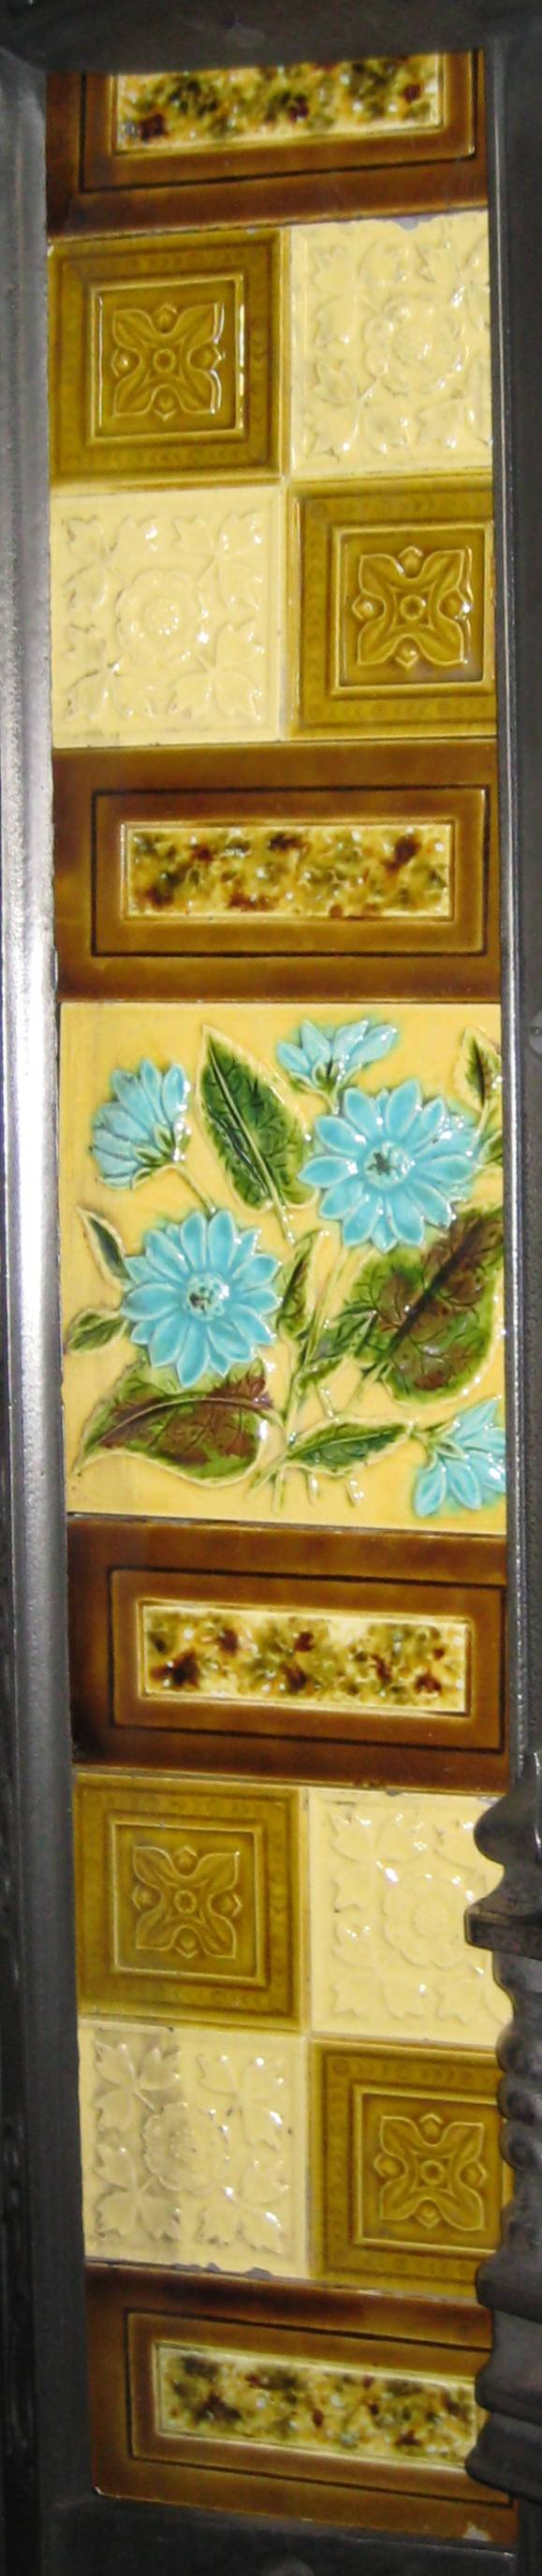 Antique Classic Tile Set